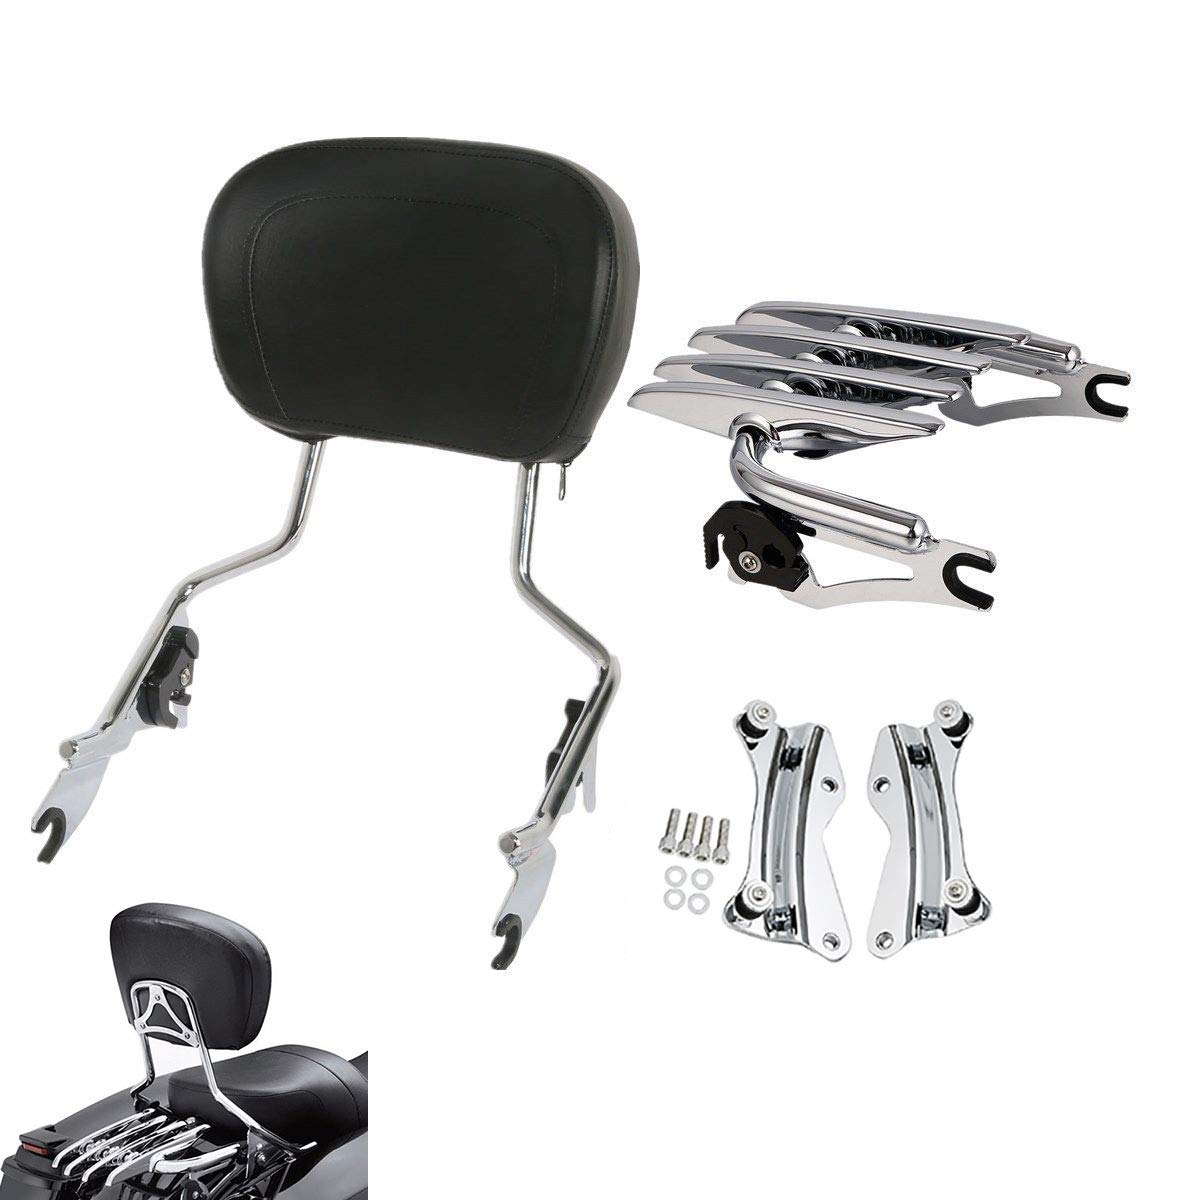 TCMT Detachable Passenger Backrest Sissy Bar With 4 Point Docking Hardware Kits For Harley Street Glide 2014-2019 (Chrome, Style A) US-XF290670-224-E